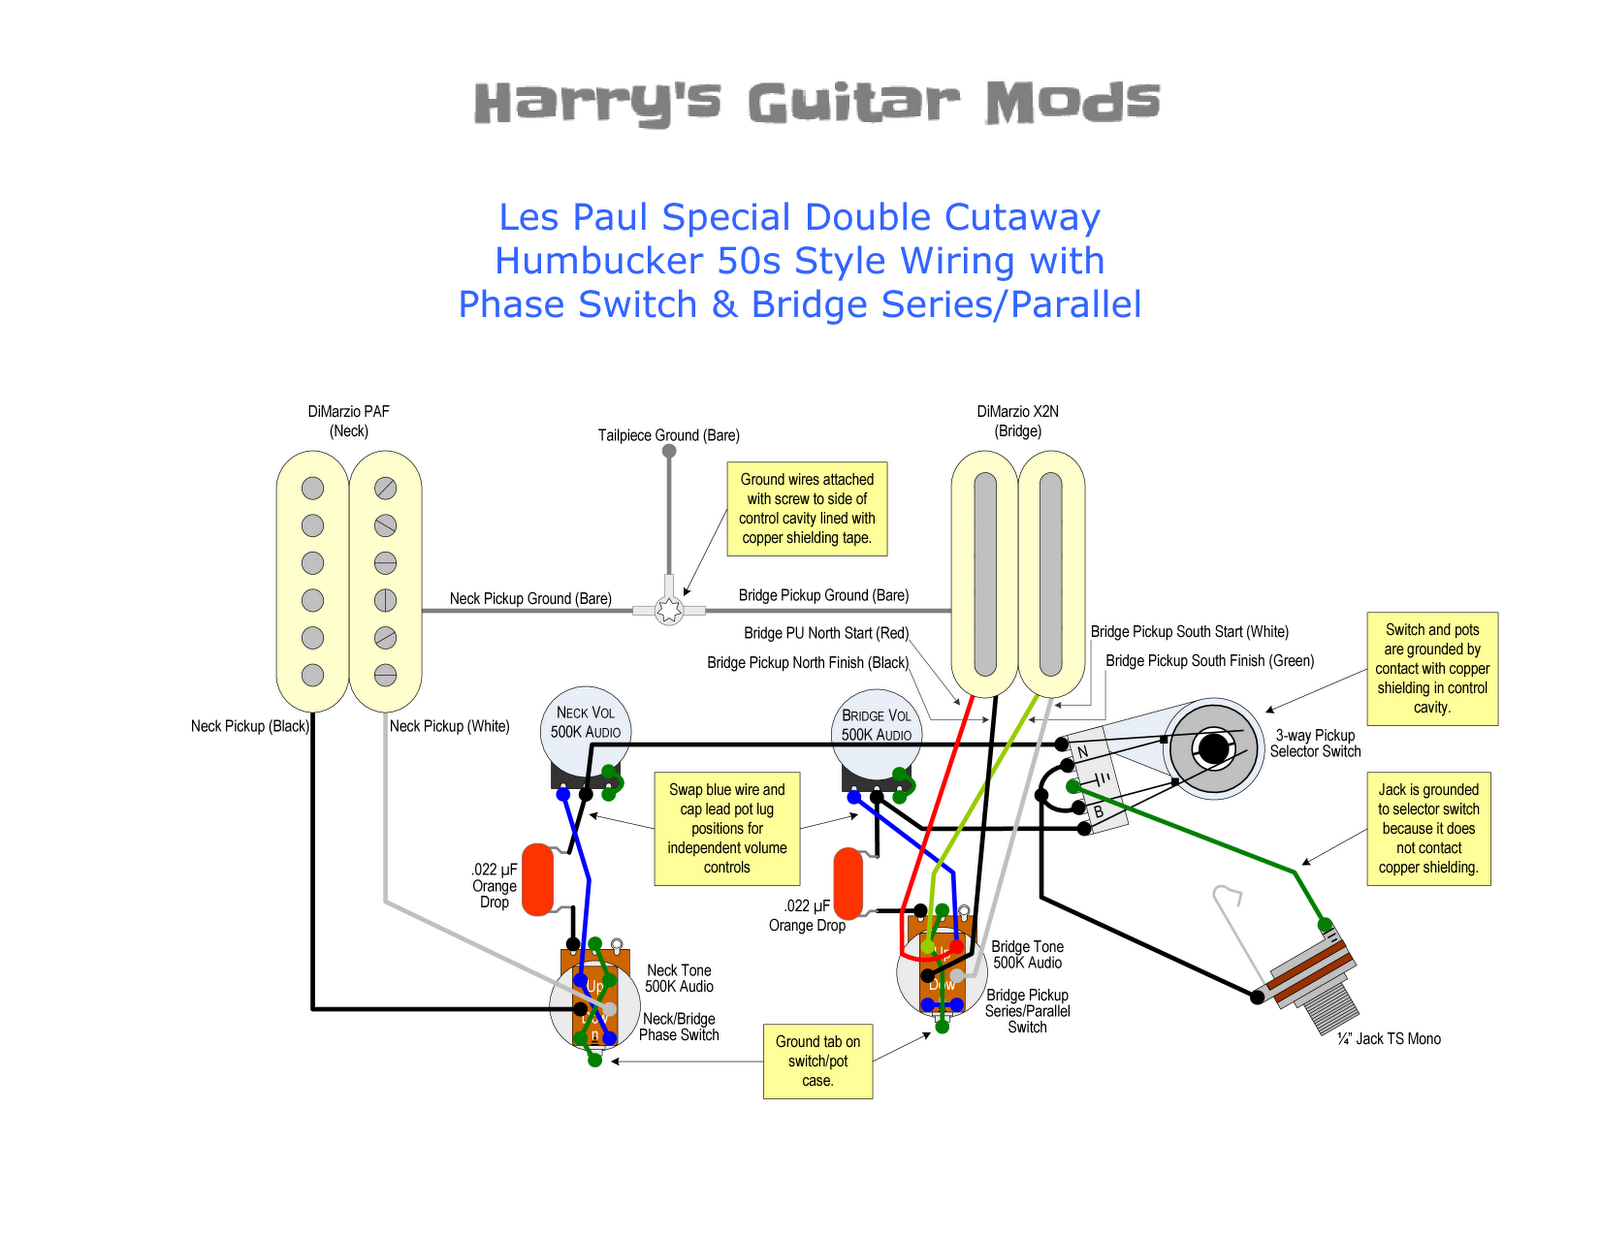 LPS+Wiring+Diagram harry's guitar mods controls wiring upgrade push pull tone pot wiring diagram at soozxer.org